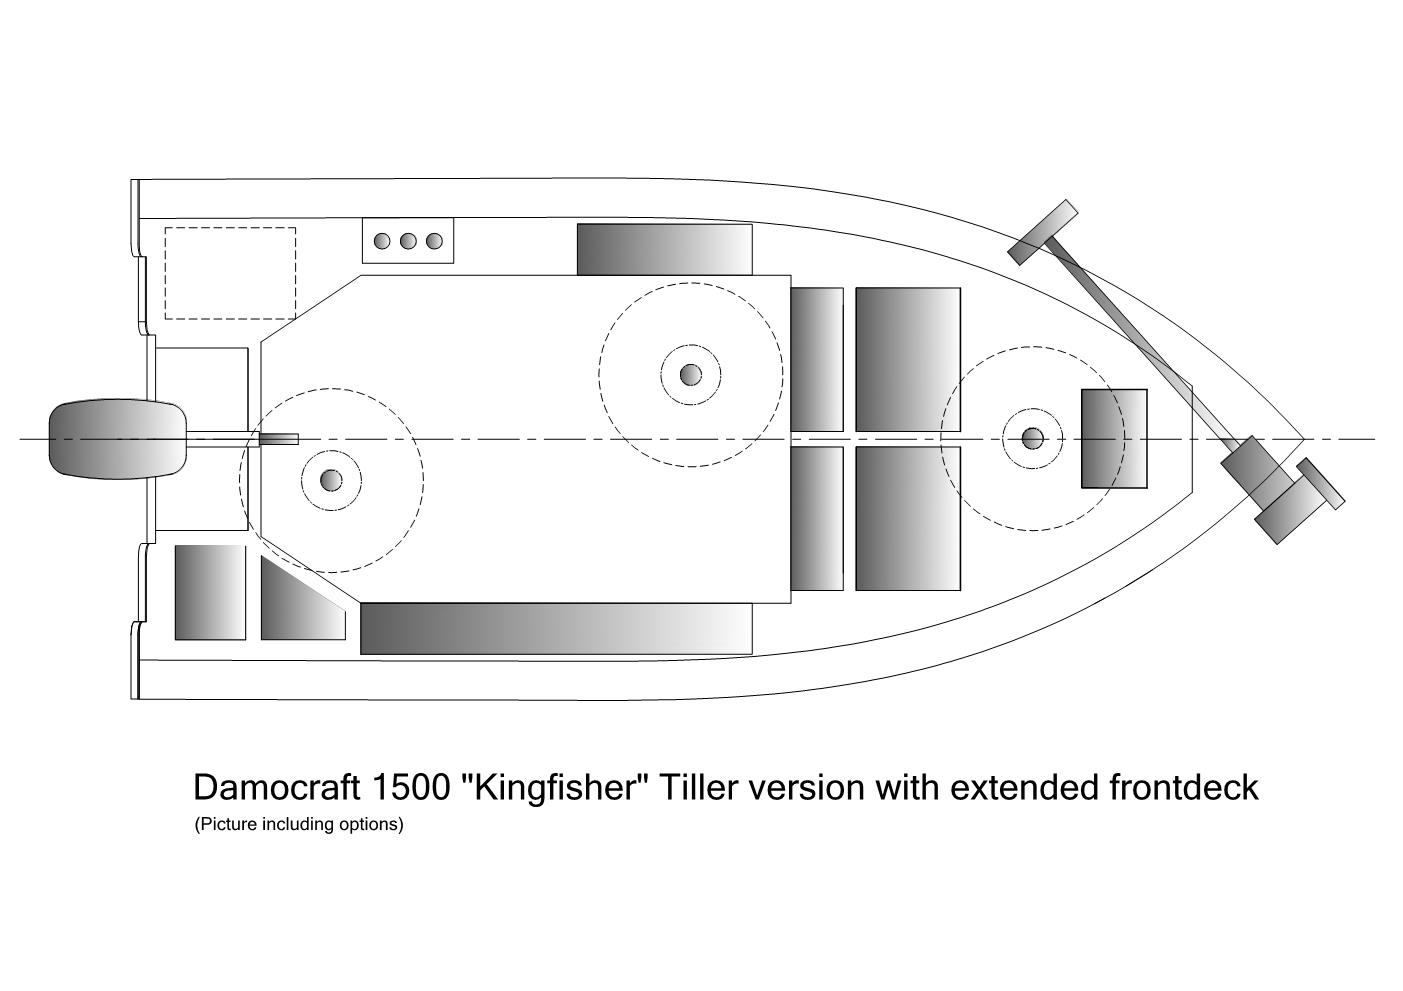 Damocraft 1500 Kingfisher with extended frontdeck